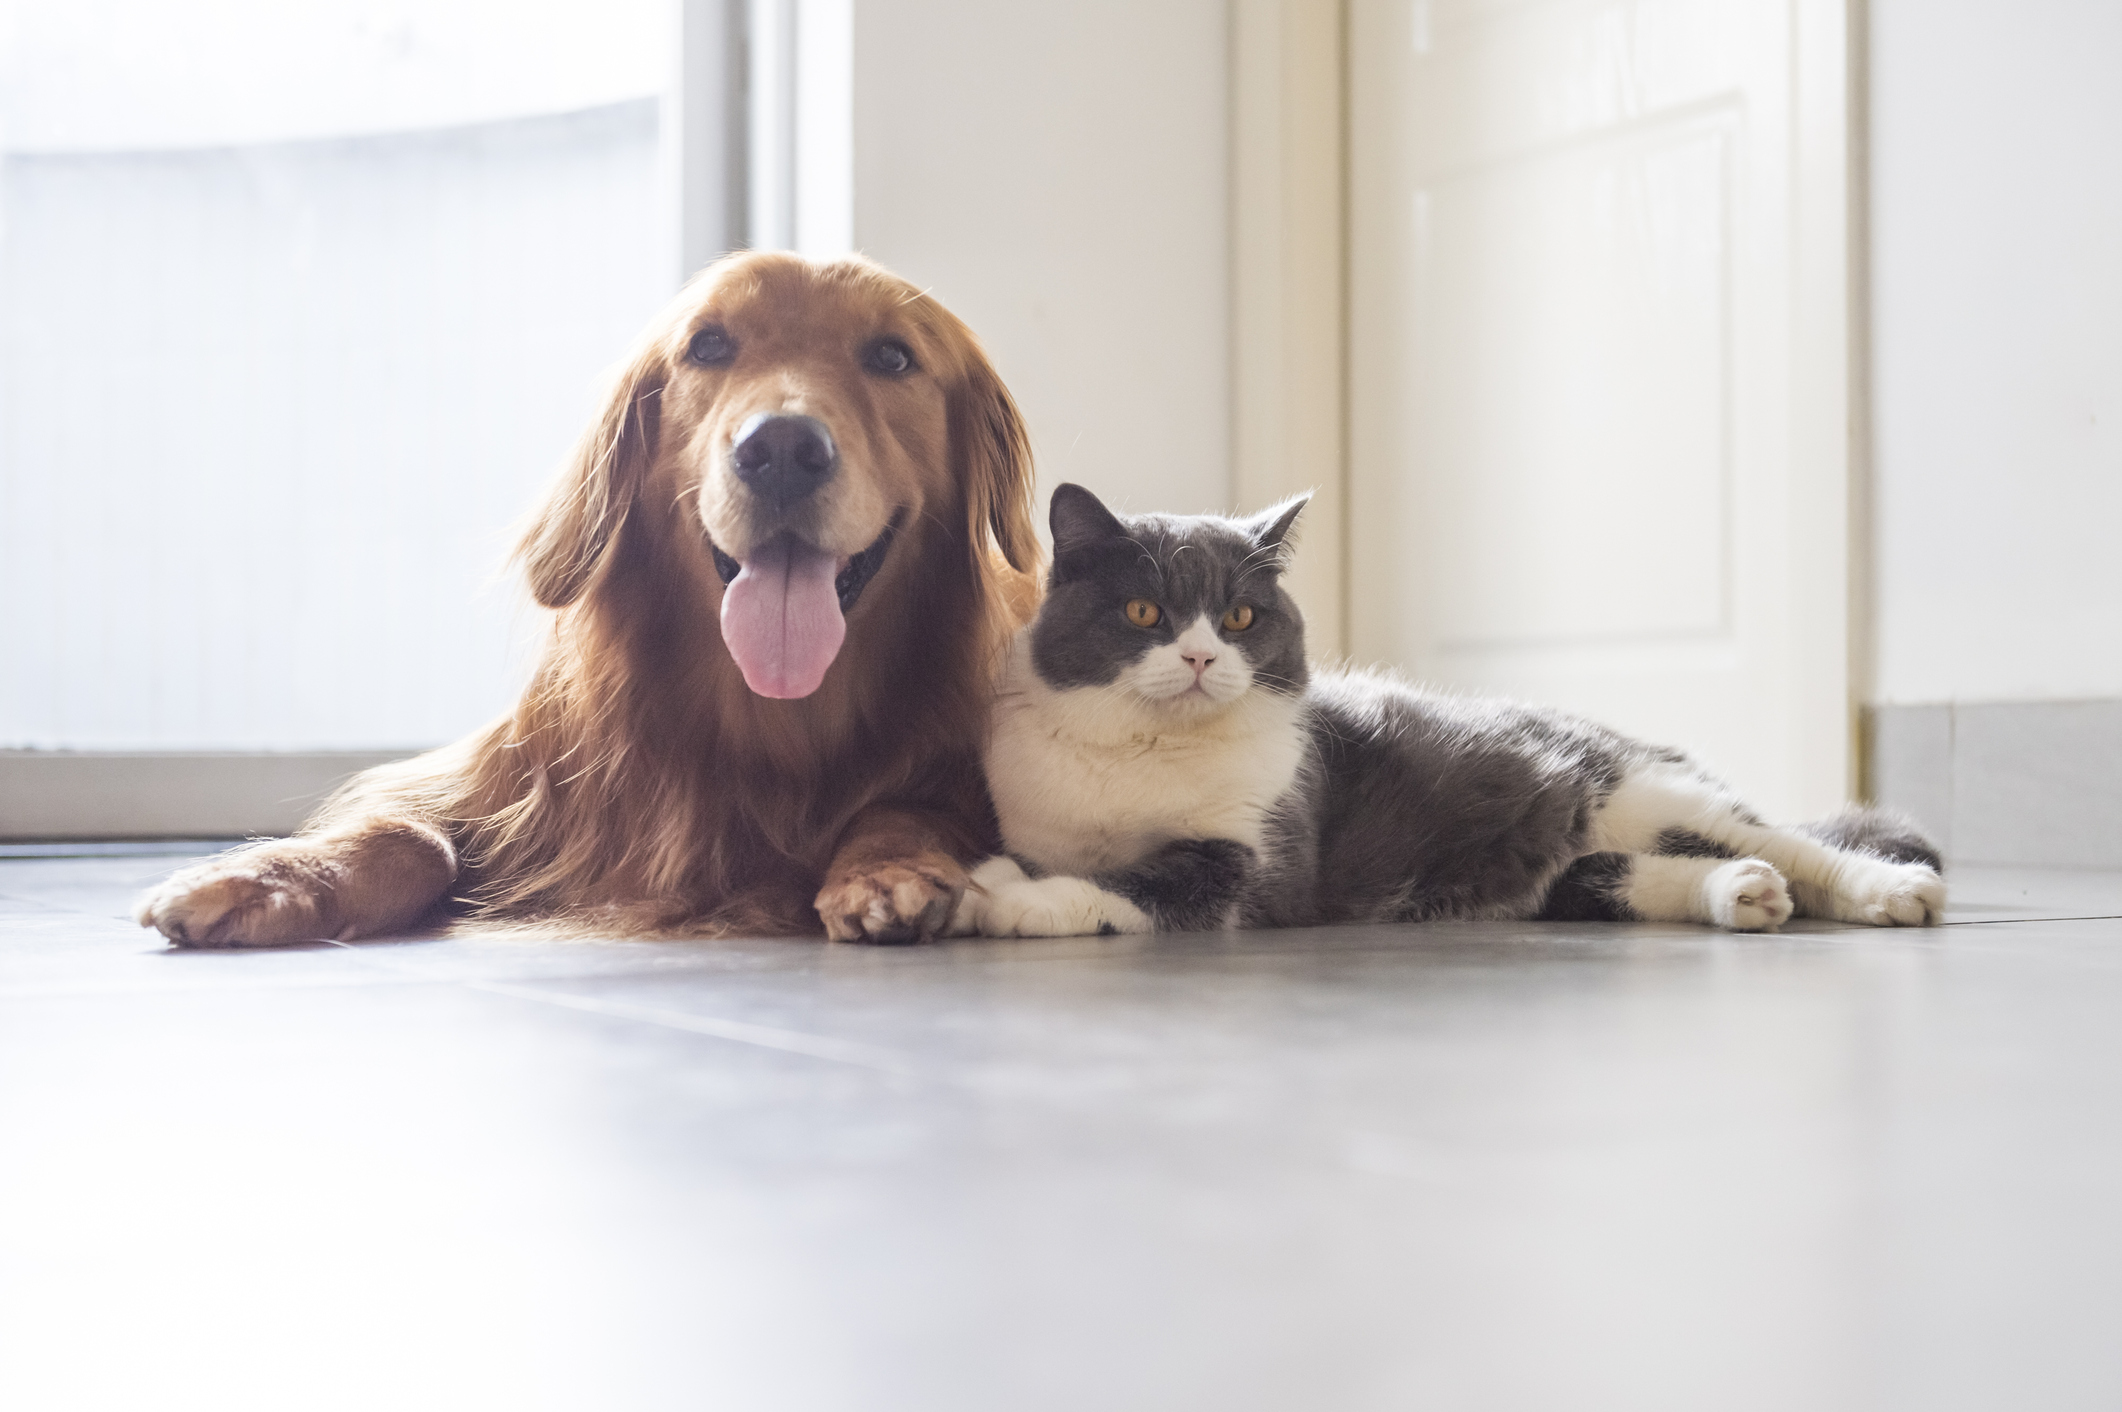 a dog and cat from the article What we know — and don't know — about how COVID-19 affects animals